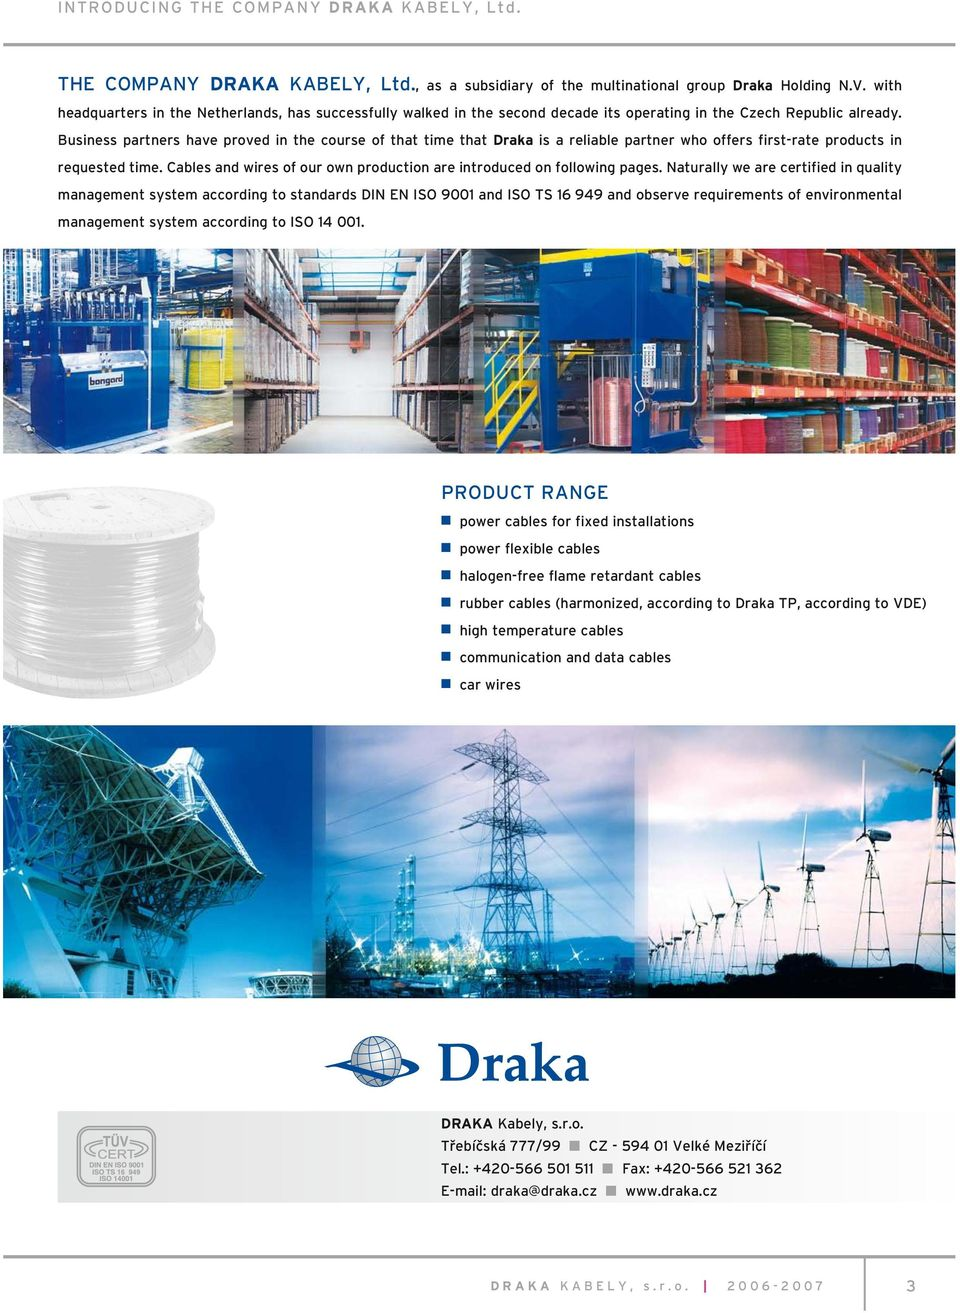 Business partners have proved in the course of that time that Draka is a reliable partner who offers first-rate products in requested time.